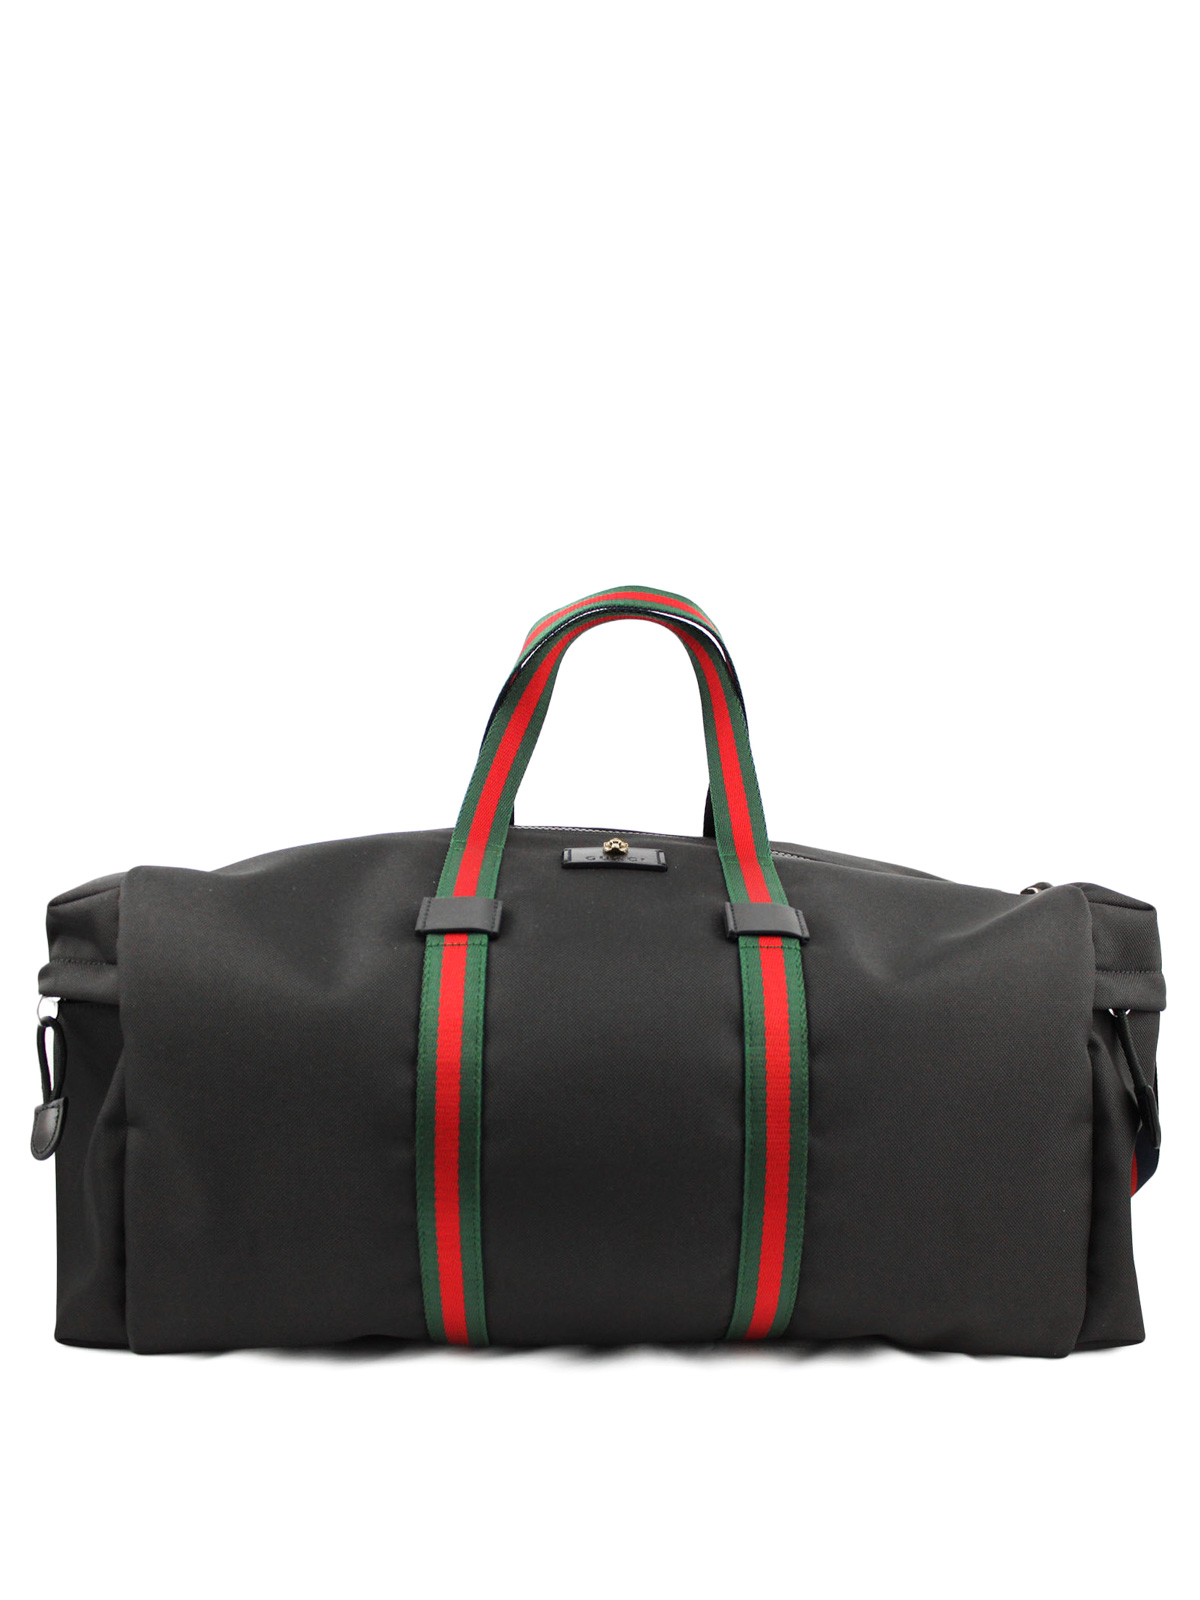 web details canvas duffle bag by gucci luggage travel bags ikrix. Black Bedroom Furniture Sets. Home Design Ideas